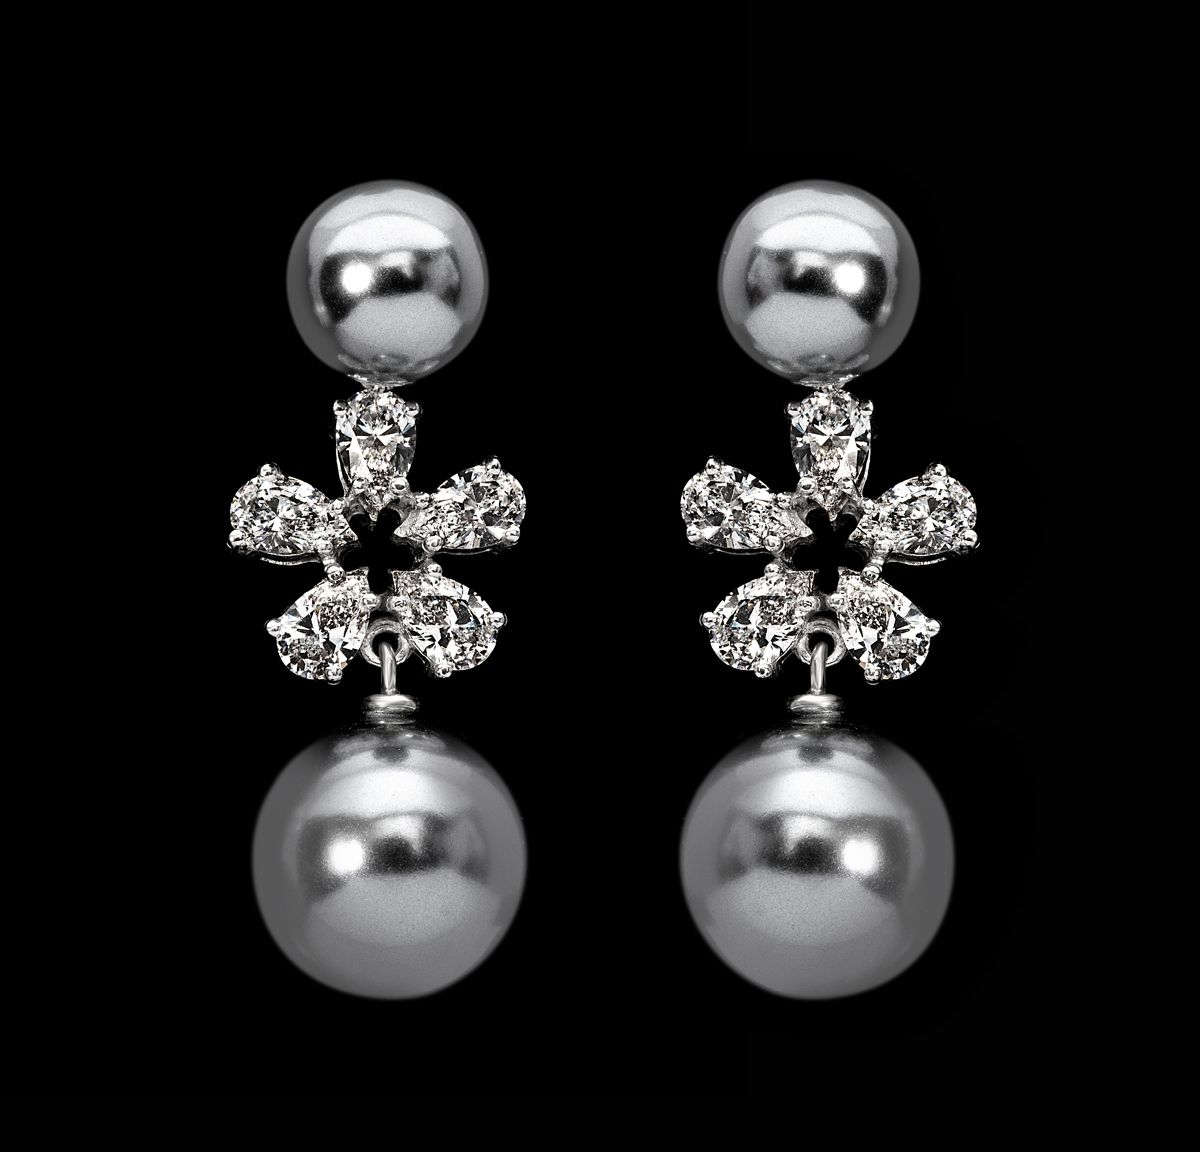 #Vintage meets #fashion! This pair of #DiosabyDarshanDave #earrings showcases black Korean pearls intricately linked to pear-shaped #SwarovskiZirconia in minimal #SterlingSilver setting. The perfect #accessory for a stylish outfit! #makeeverydaybrilliant #jewellery #finejewellery #traveljewellery #weddings #fashionwear #preciousjewellery #luxejewellery  #dailywear #workwear #casualwear #destinationweddings #bridalwear #womansnewbestfriend